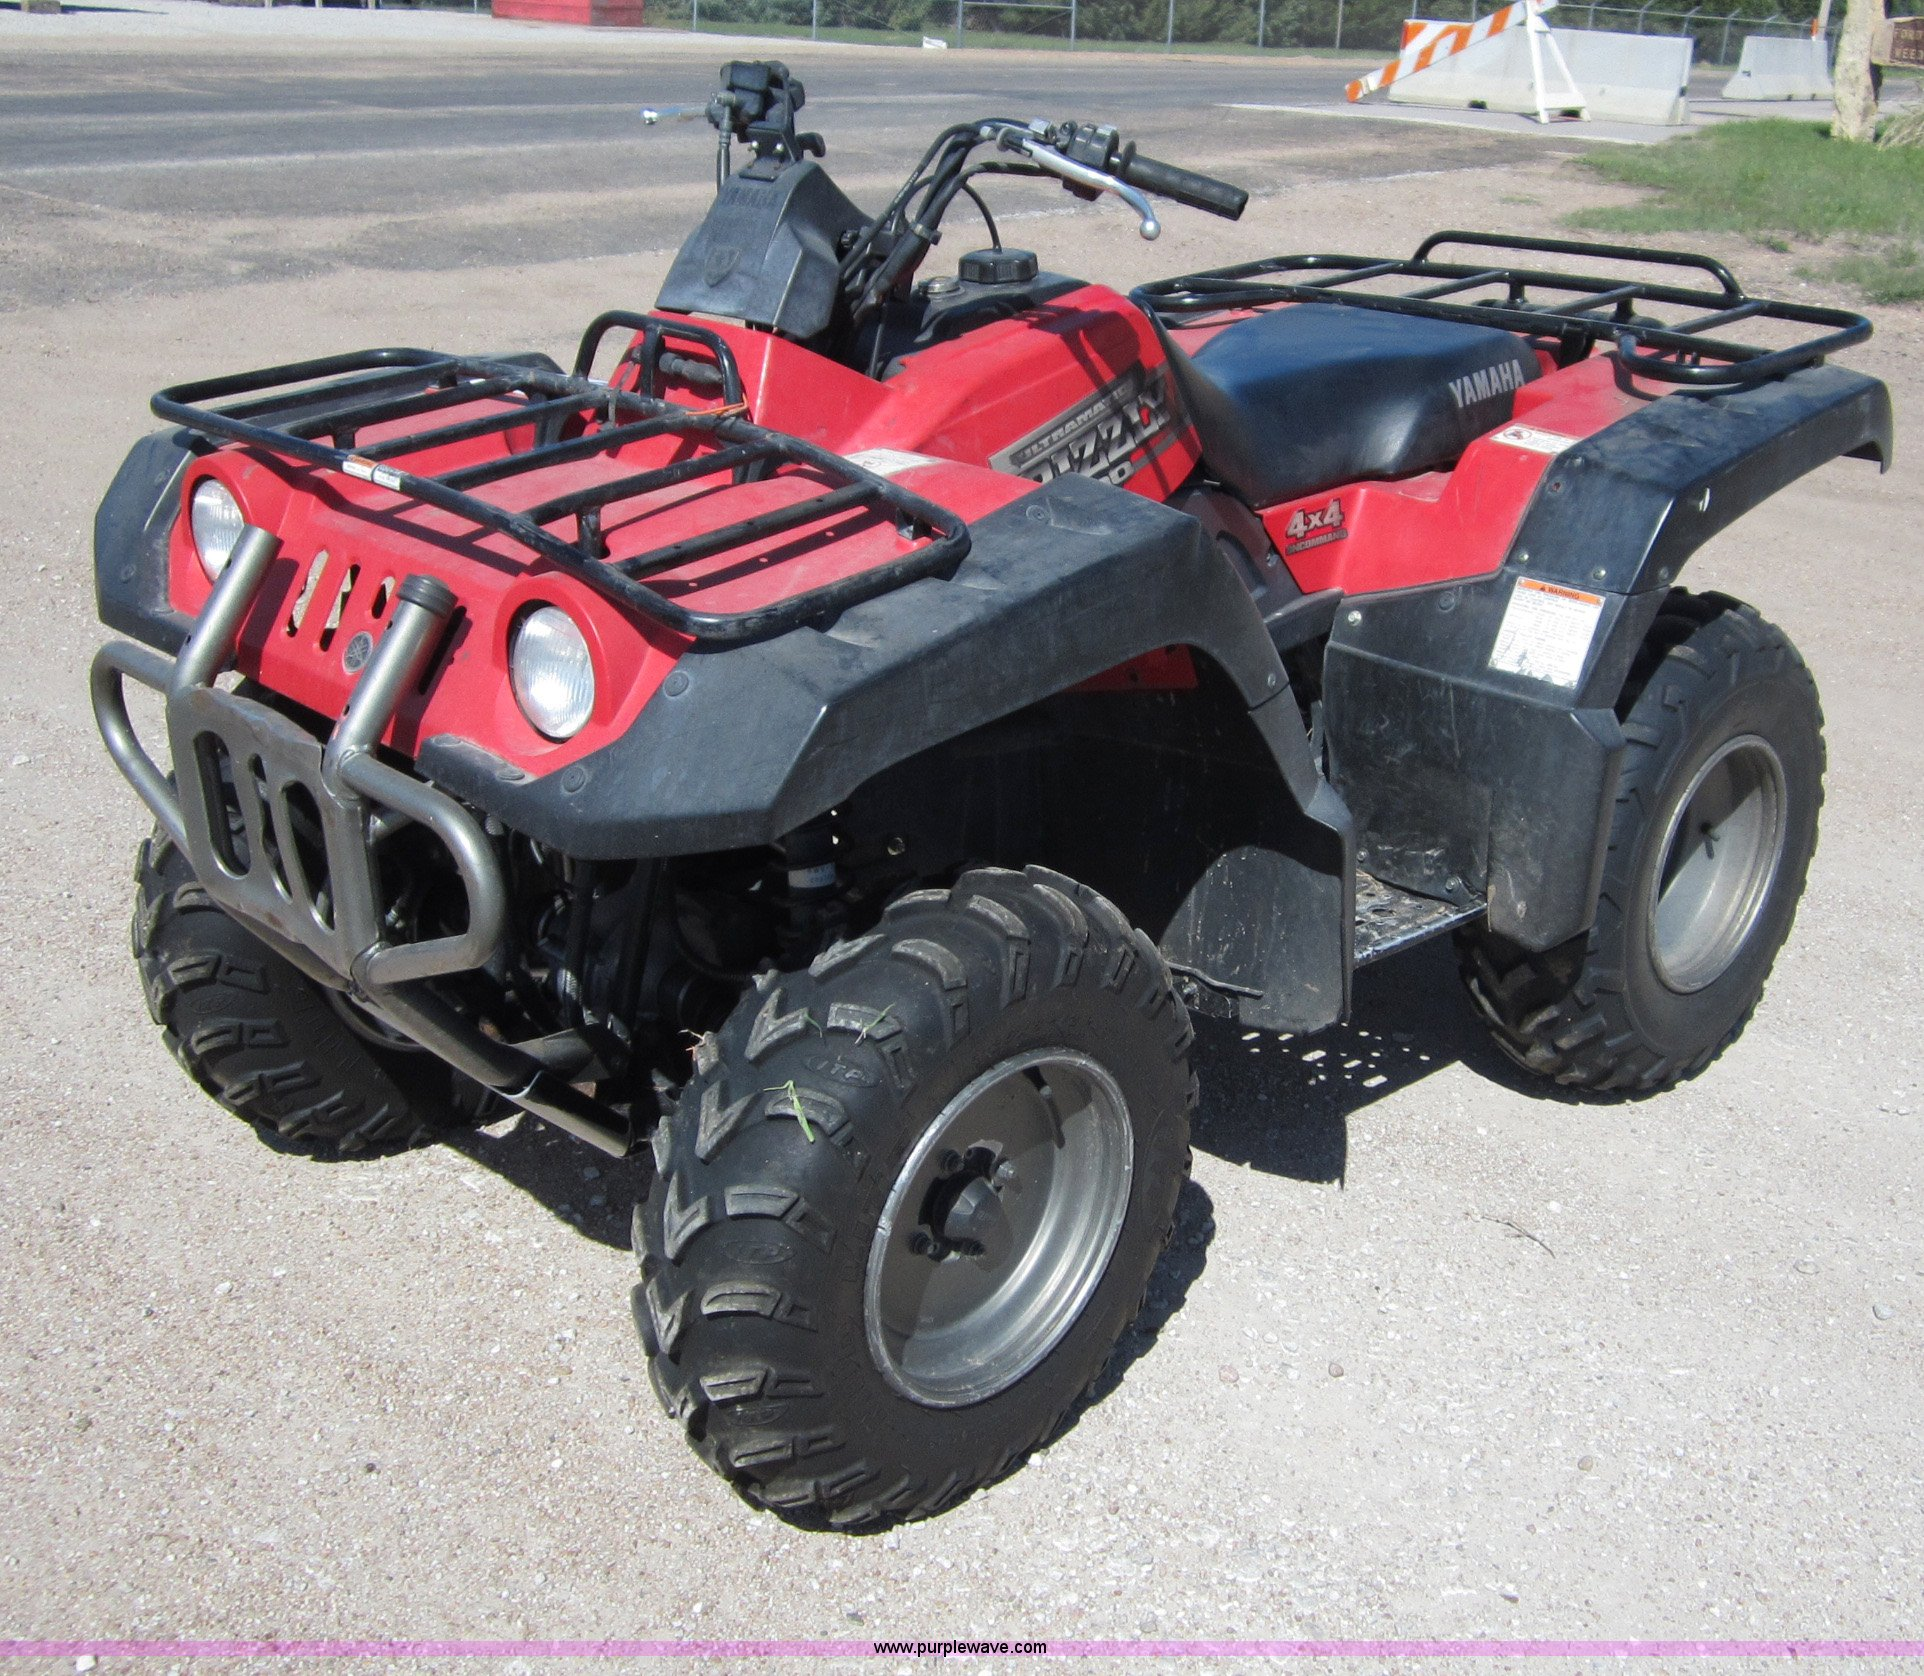 Yamaha Grizzly 600 Atv For Sale 1998 Ultramatic Wiring Diagram B3202 Image Item 2001